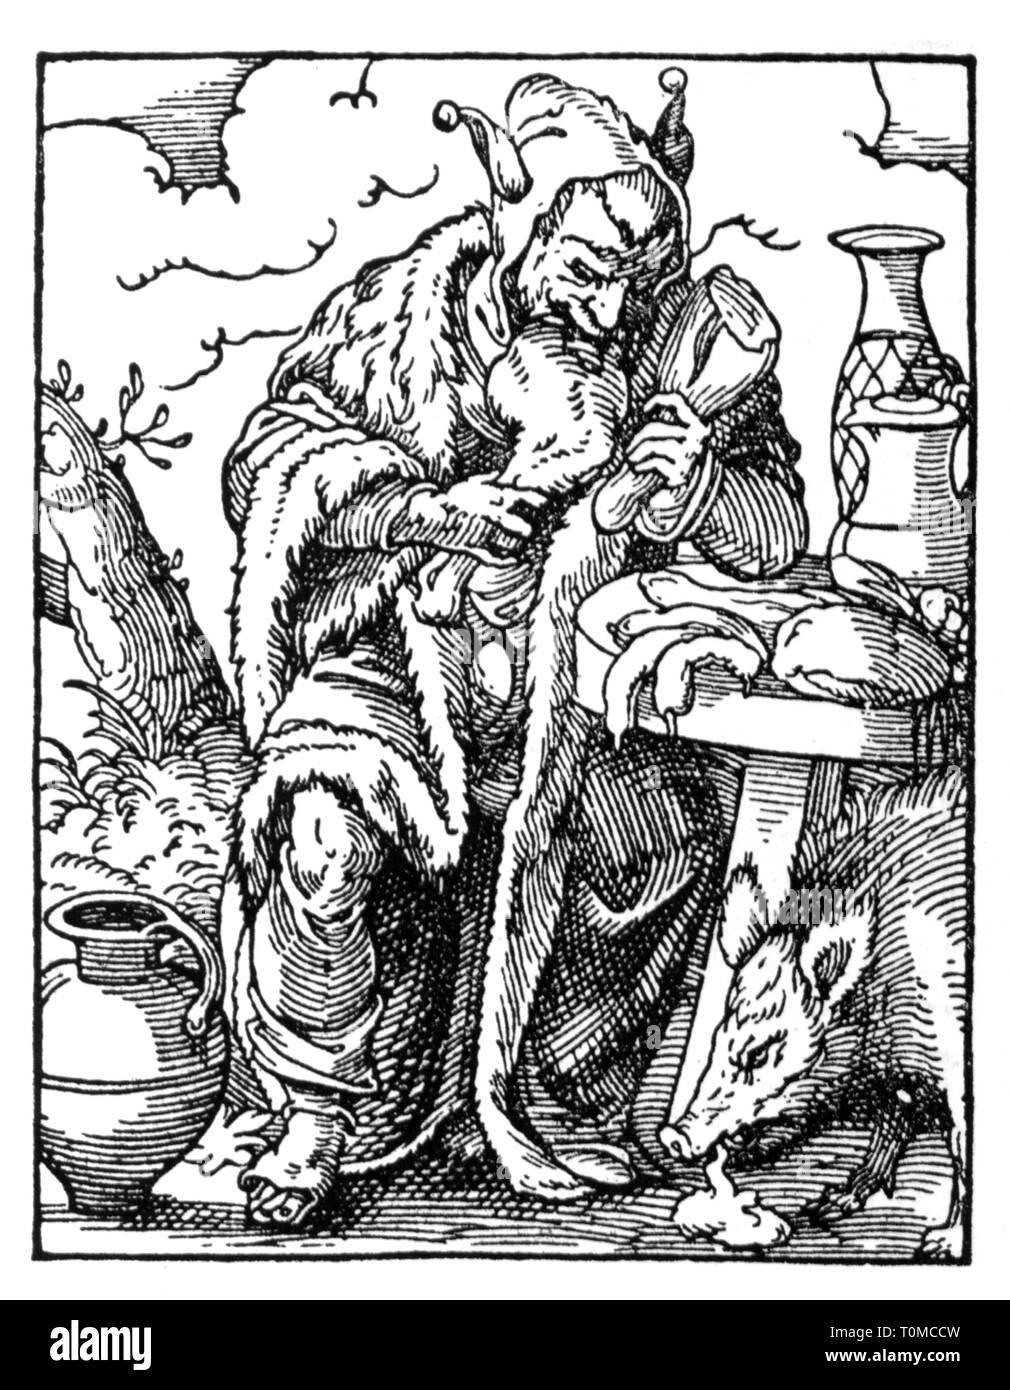 people, allegories, 'The eating Fool', woodcut, 'Staendebuch' von Jost Amman, Frankfurt am Main, 1568, with verse by Hans Sachs, Additional-Rights-Clearance-Info-Not-Available - Stock Image